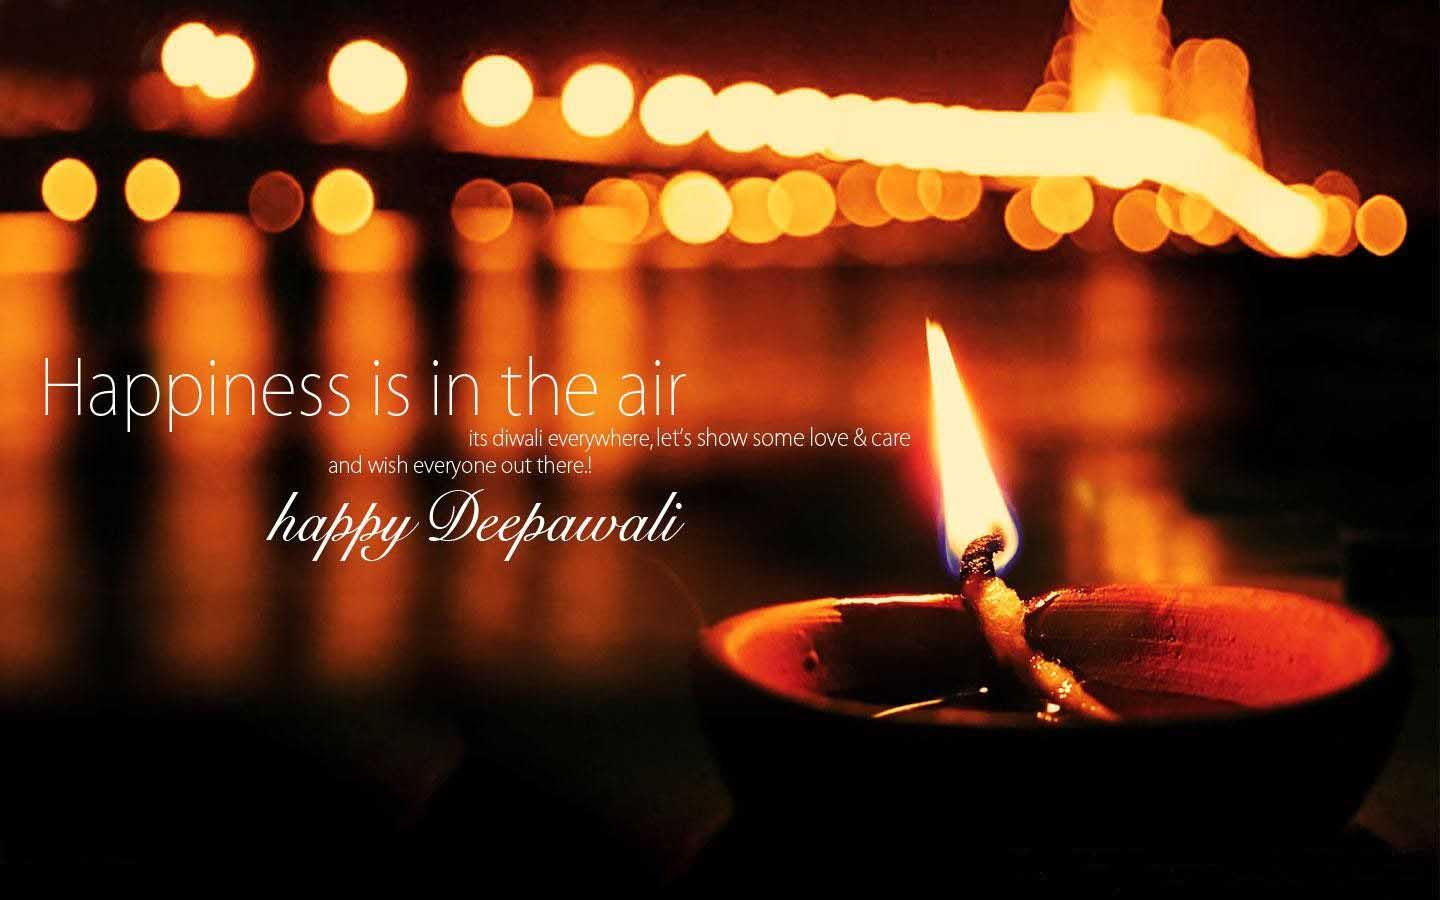 Best Diwali Hd Wallpapers Quotes To Share With Your Friends Family